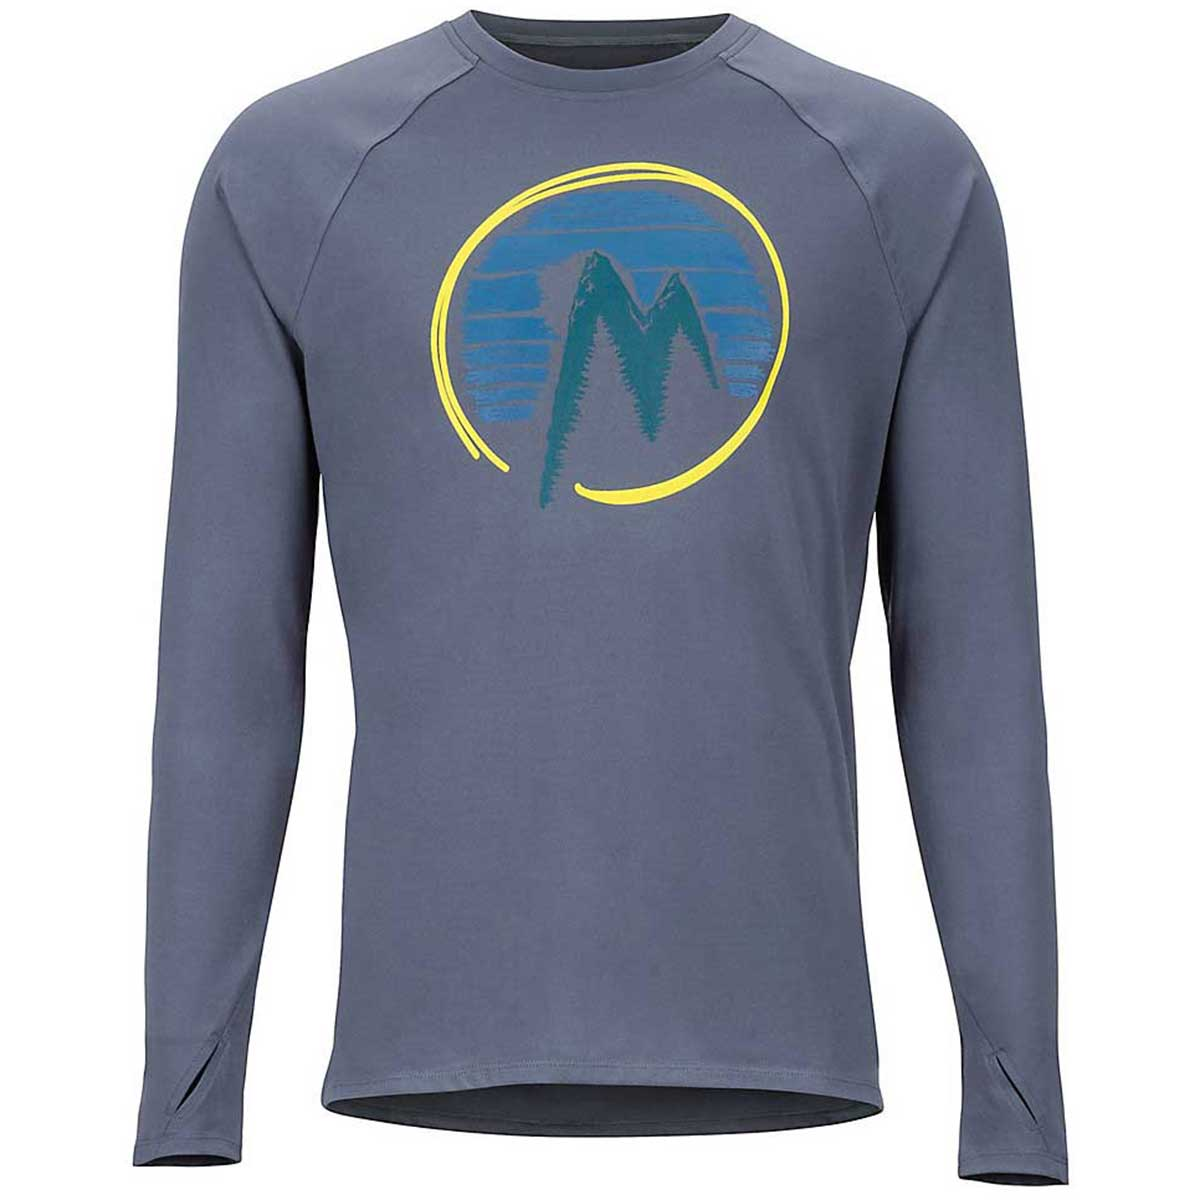 Marmot Men's Midweight Harrier Long Sleeve in Steel Onyx